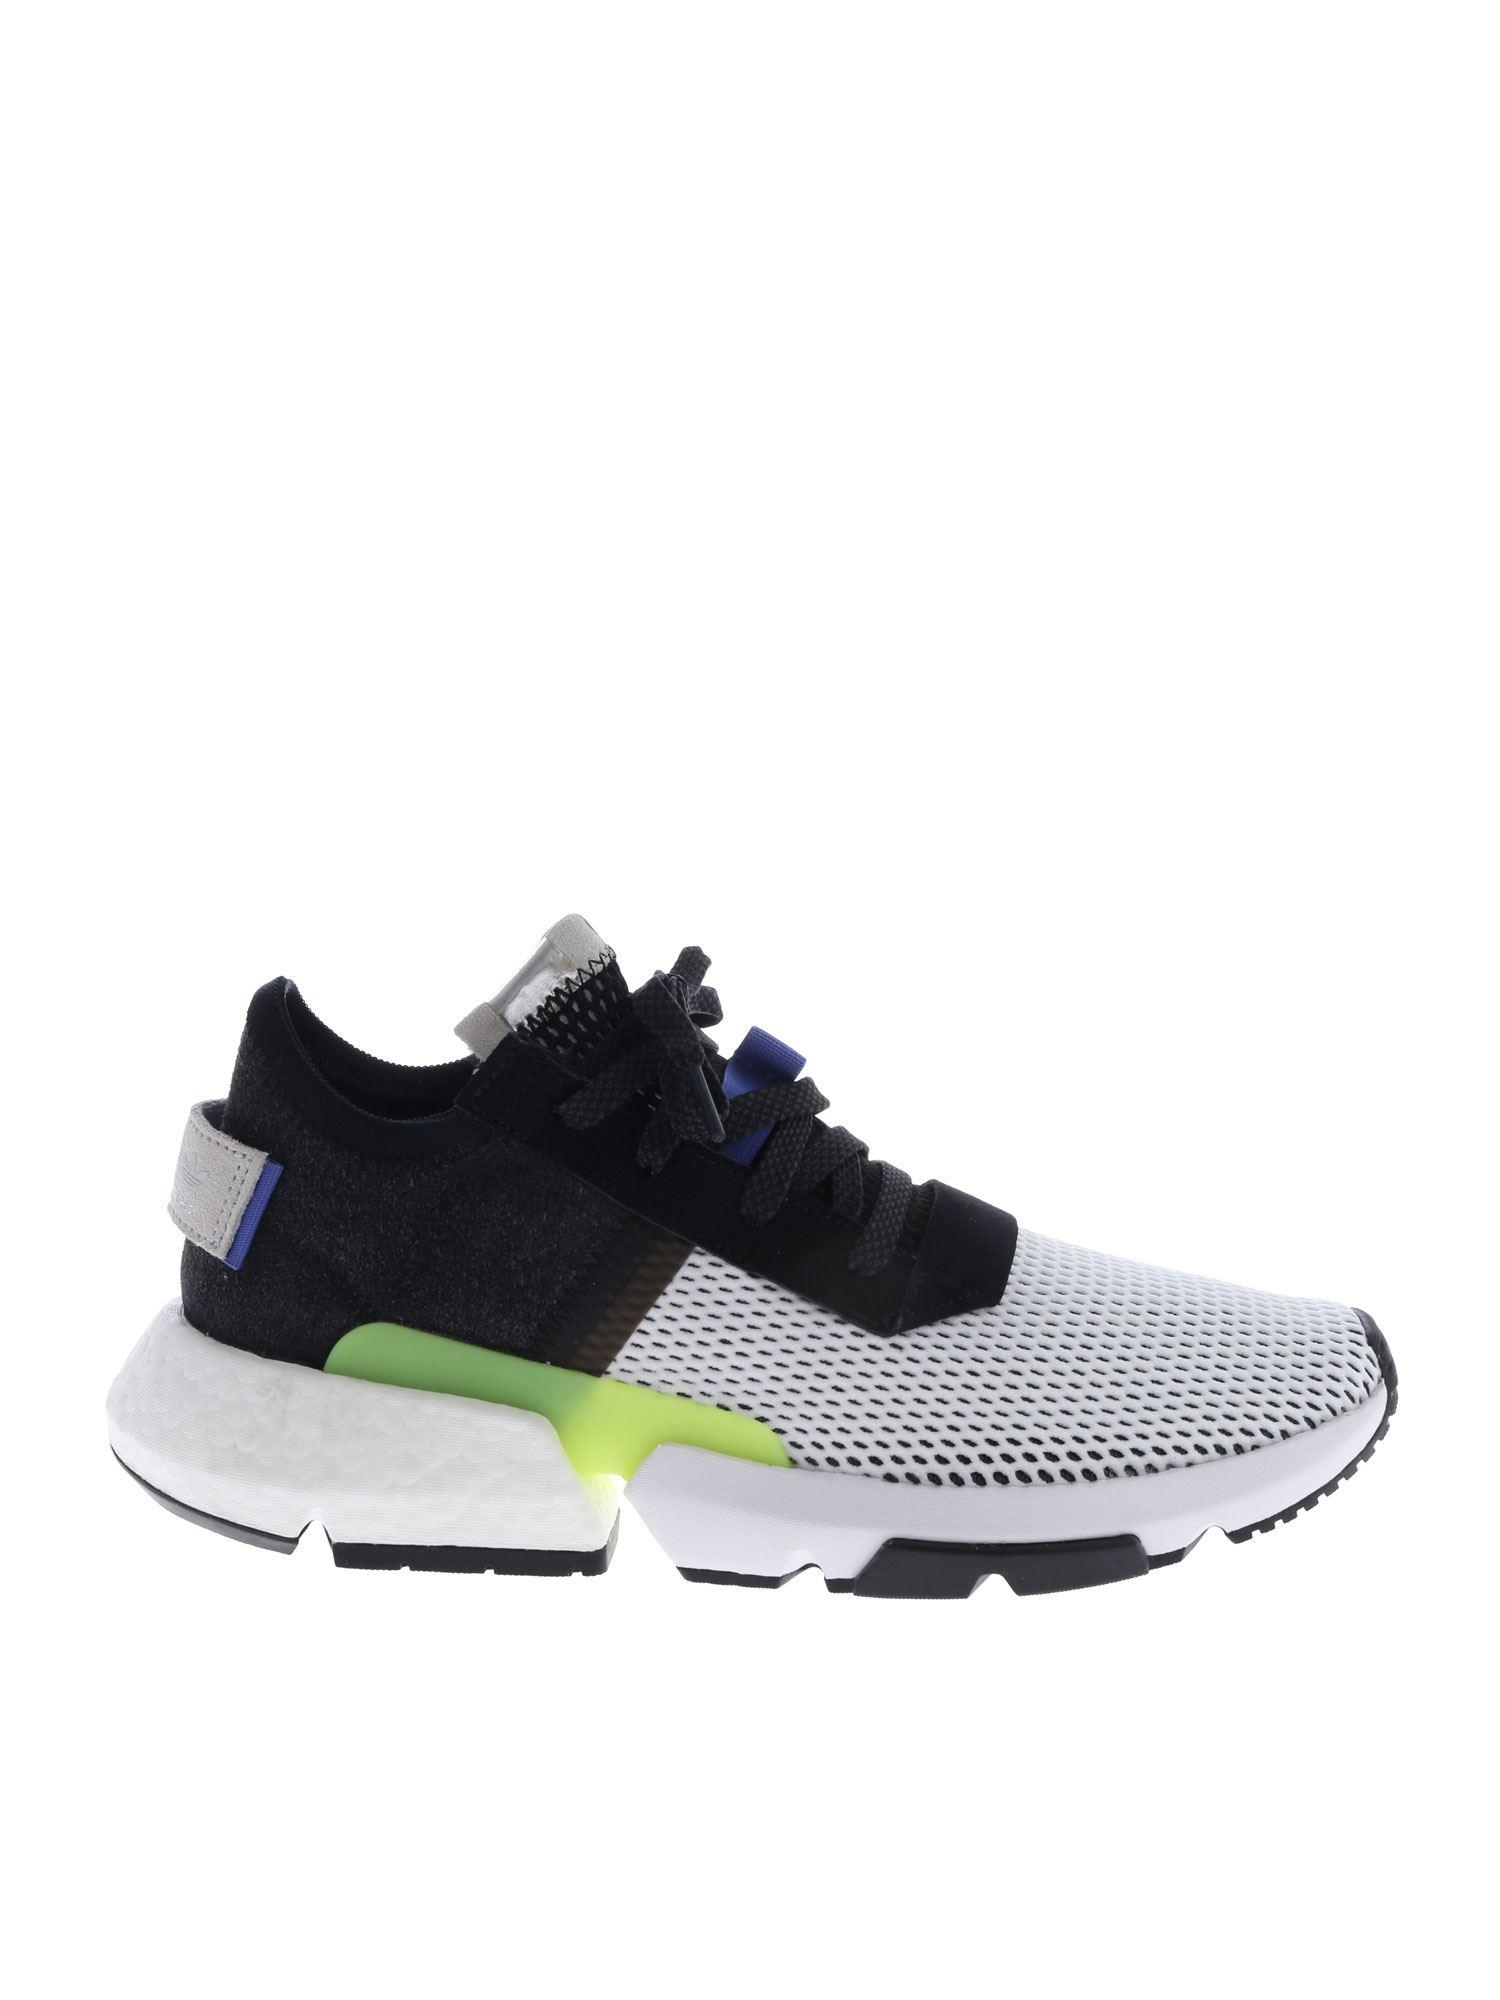 newest 00860 1e5b2 adidas Originals. Men s Pod-s3.1 Sneakers In White And Black